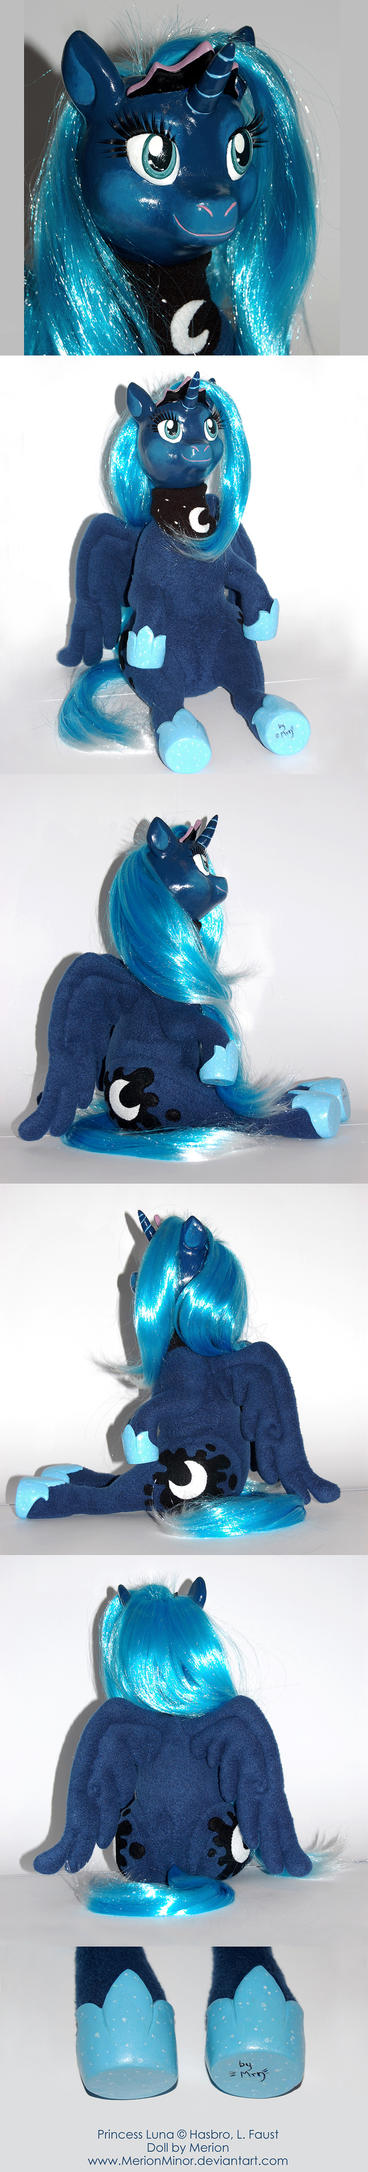 Princess Luna Doll by Merionic